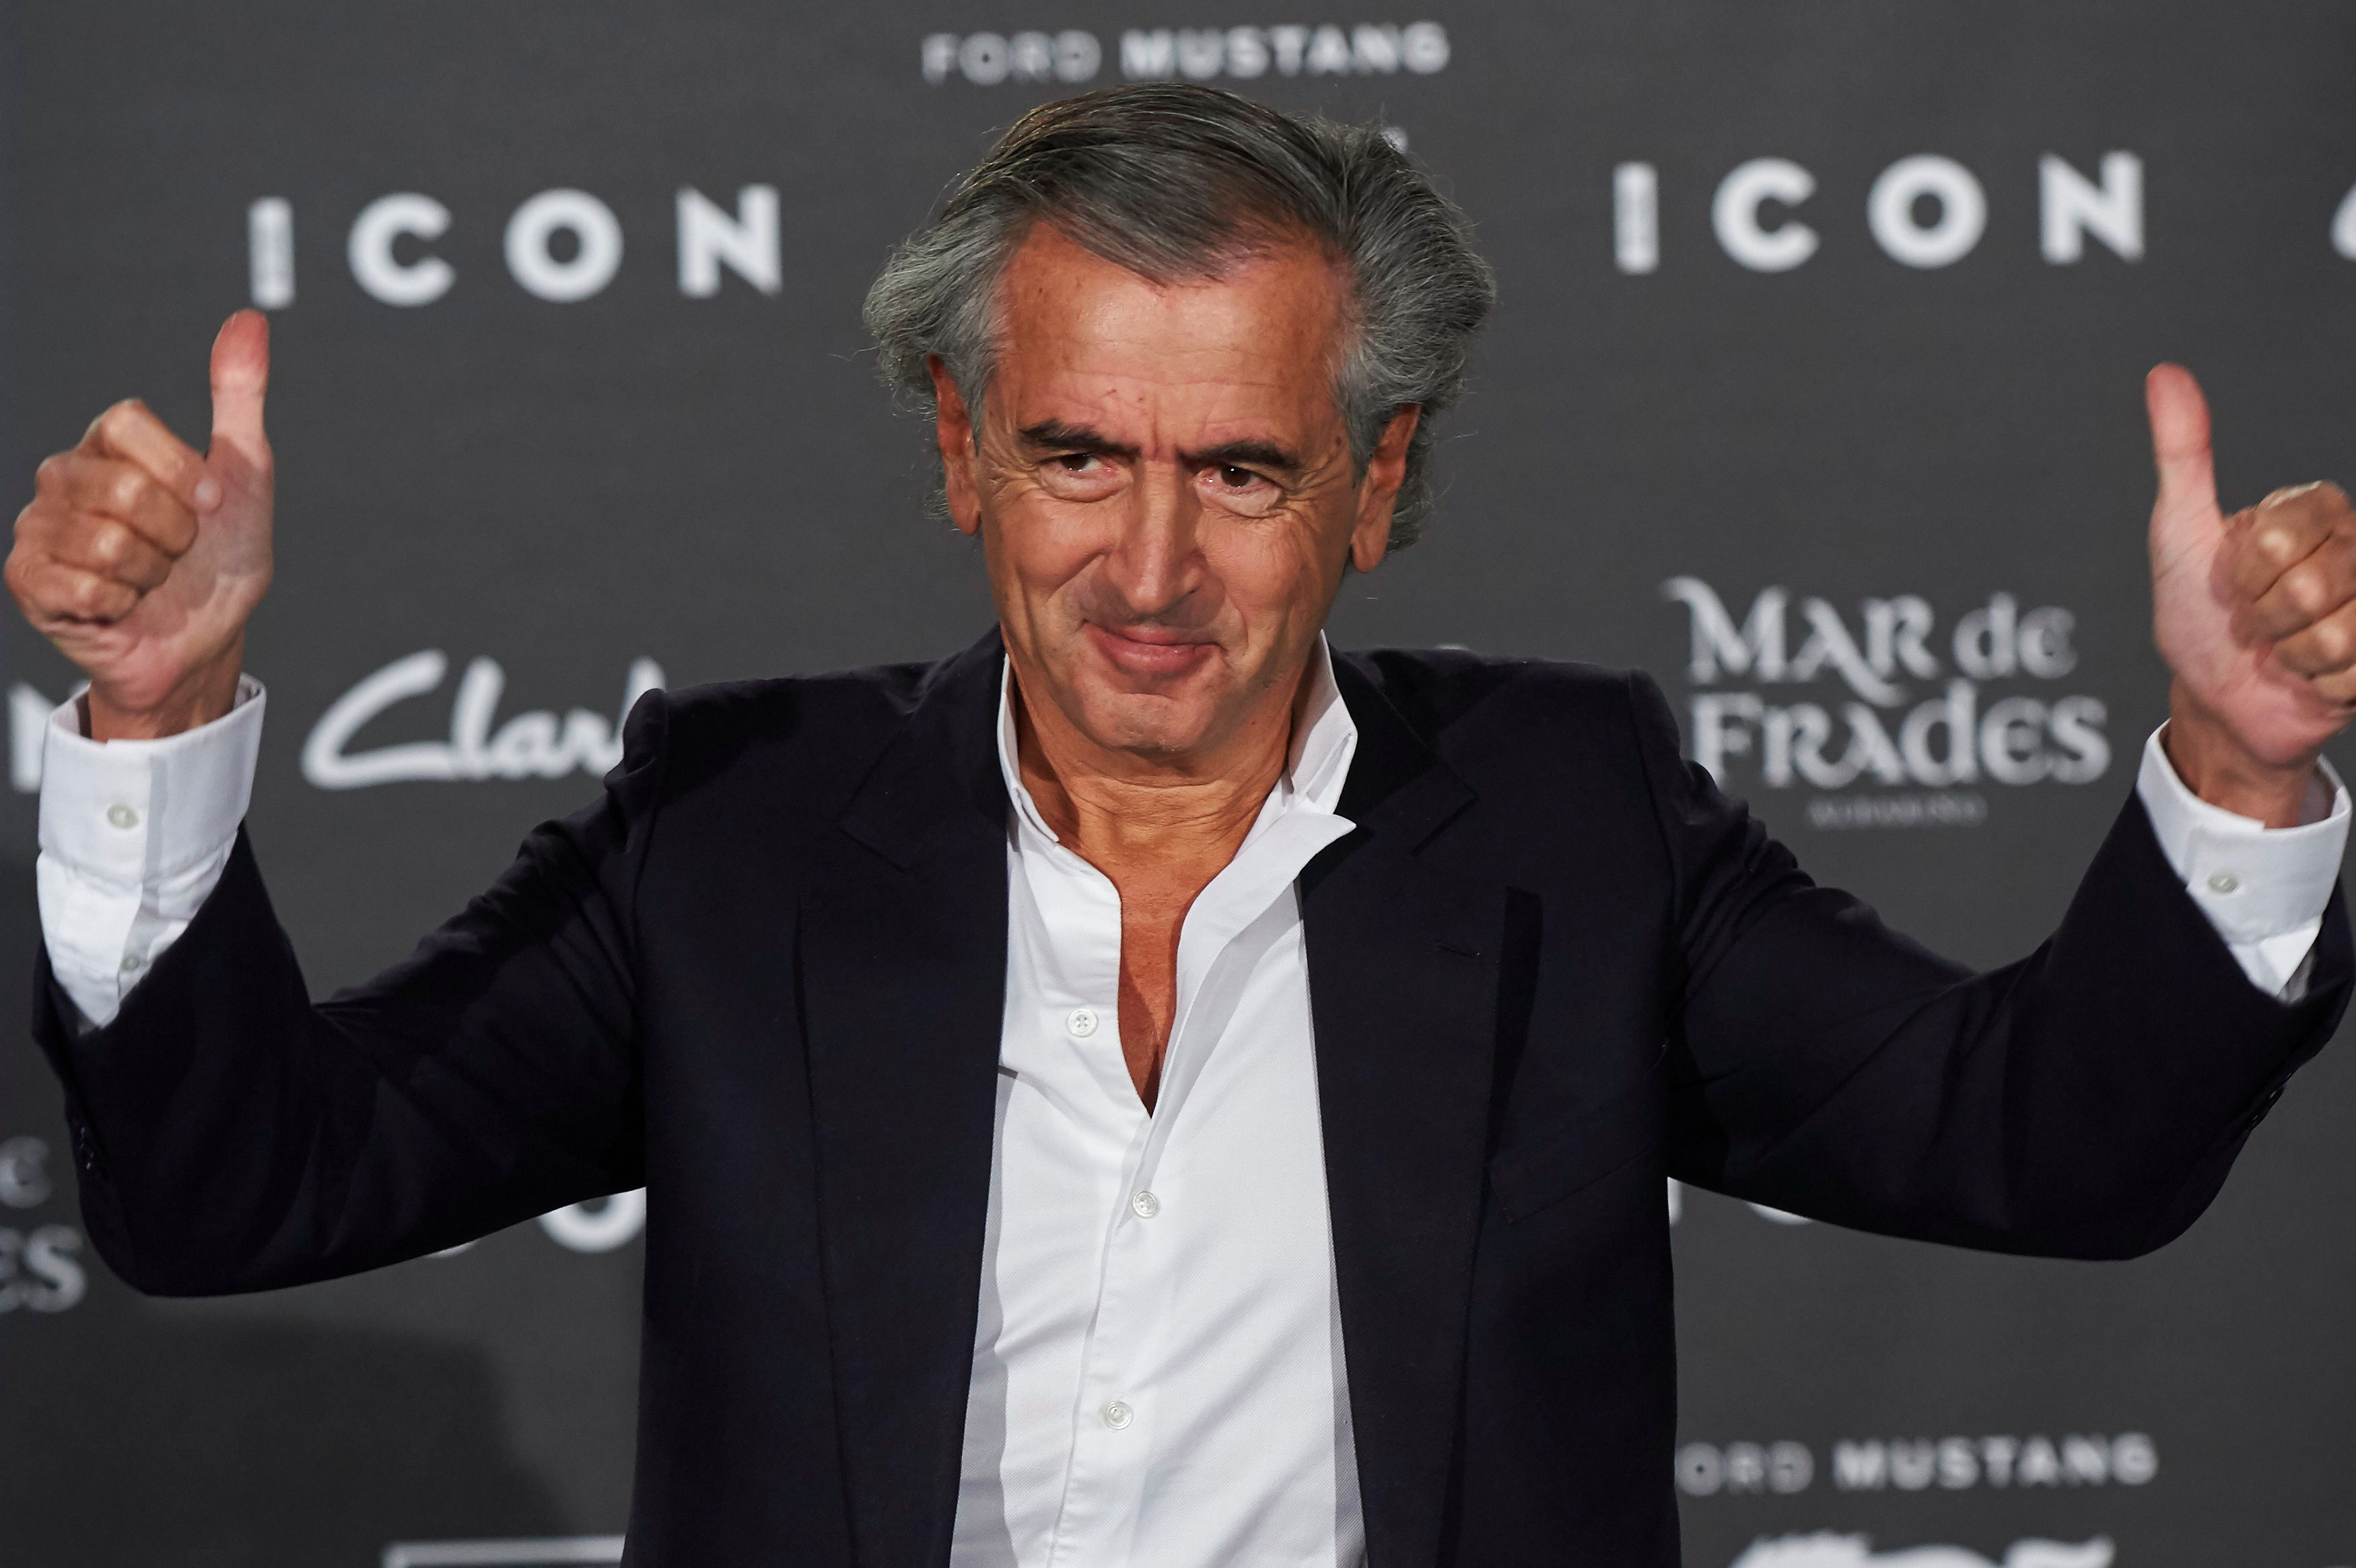 Bernard-Henri Lévy in his iconic white shirt.